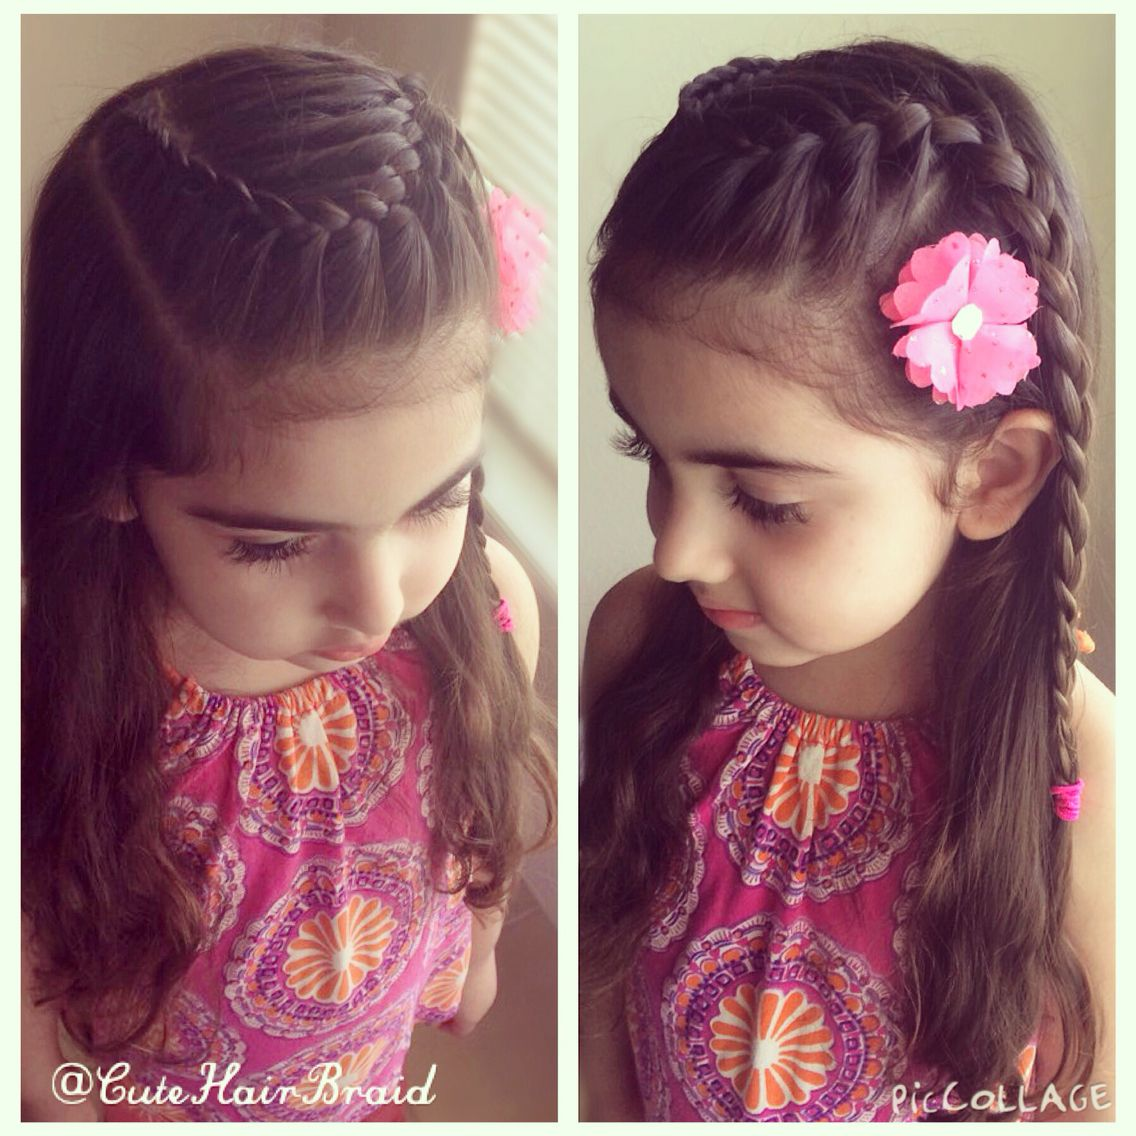 Hairstyle for girls peinados para niñas peinados de fiesta